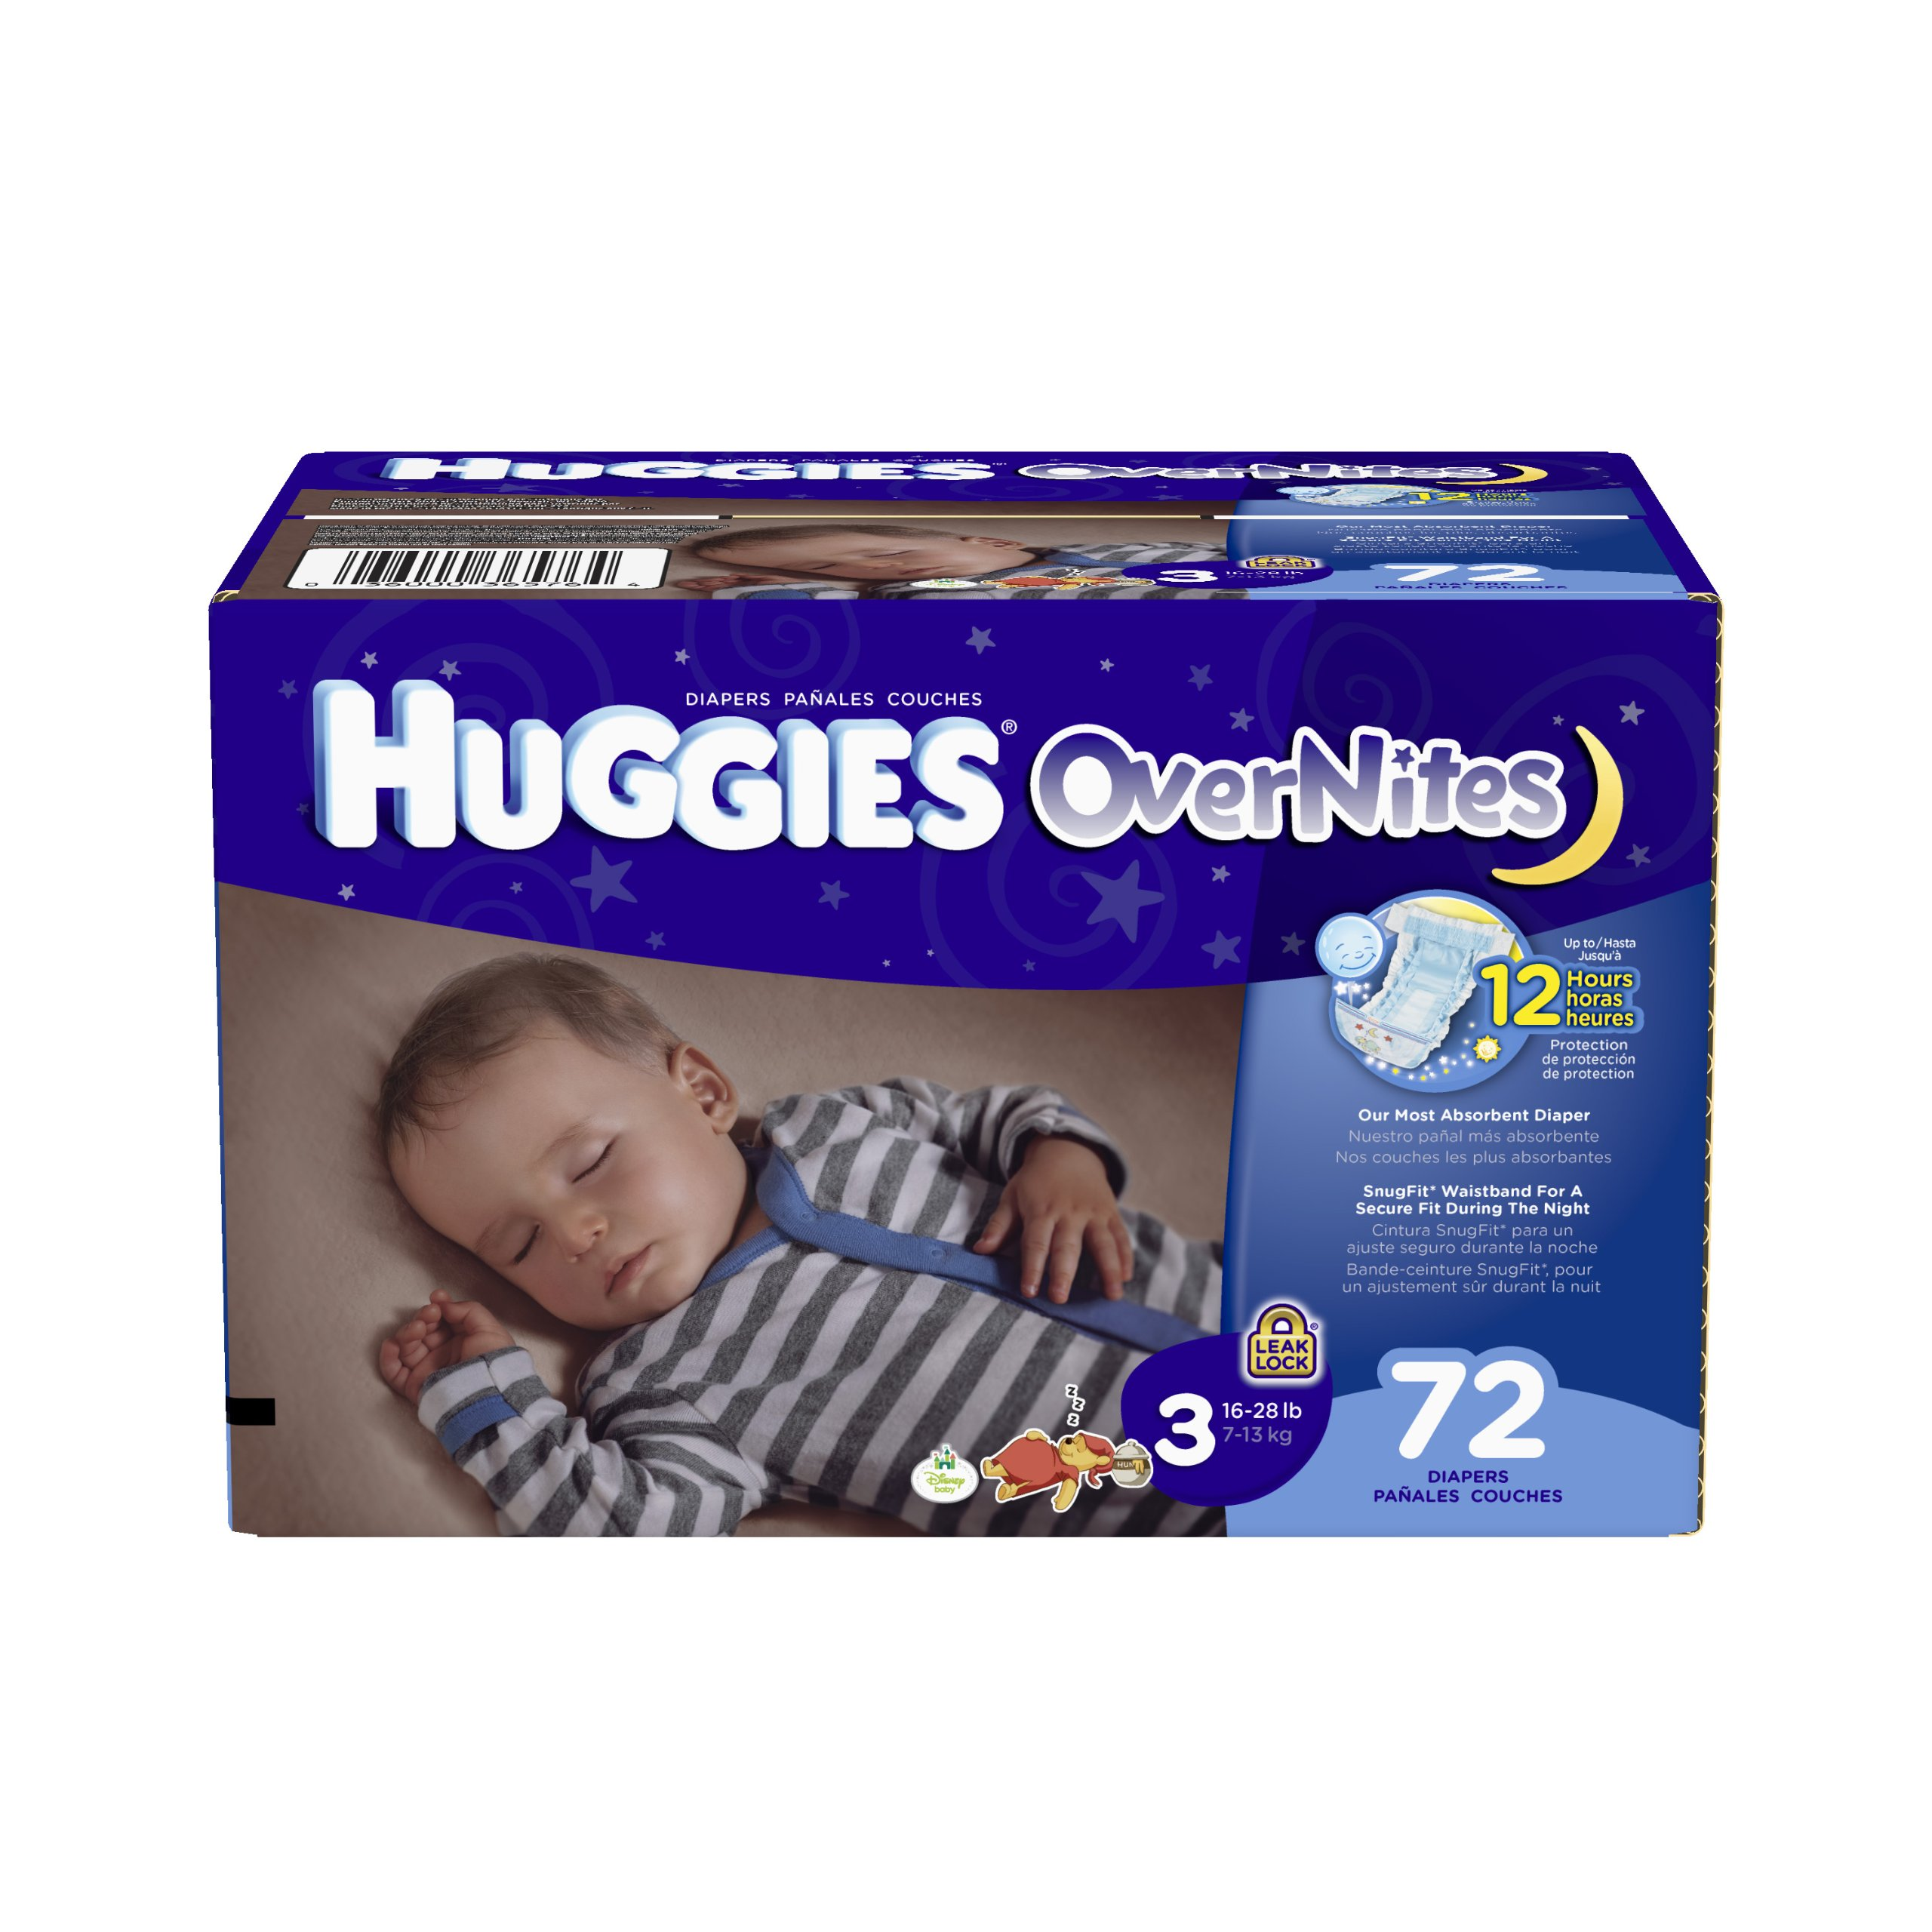 Huggies OverNites Diapers, Size 3, Big Pack, 72 Count by HUGGIES